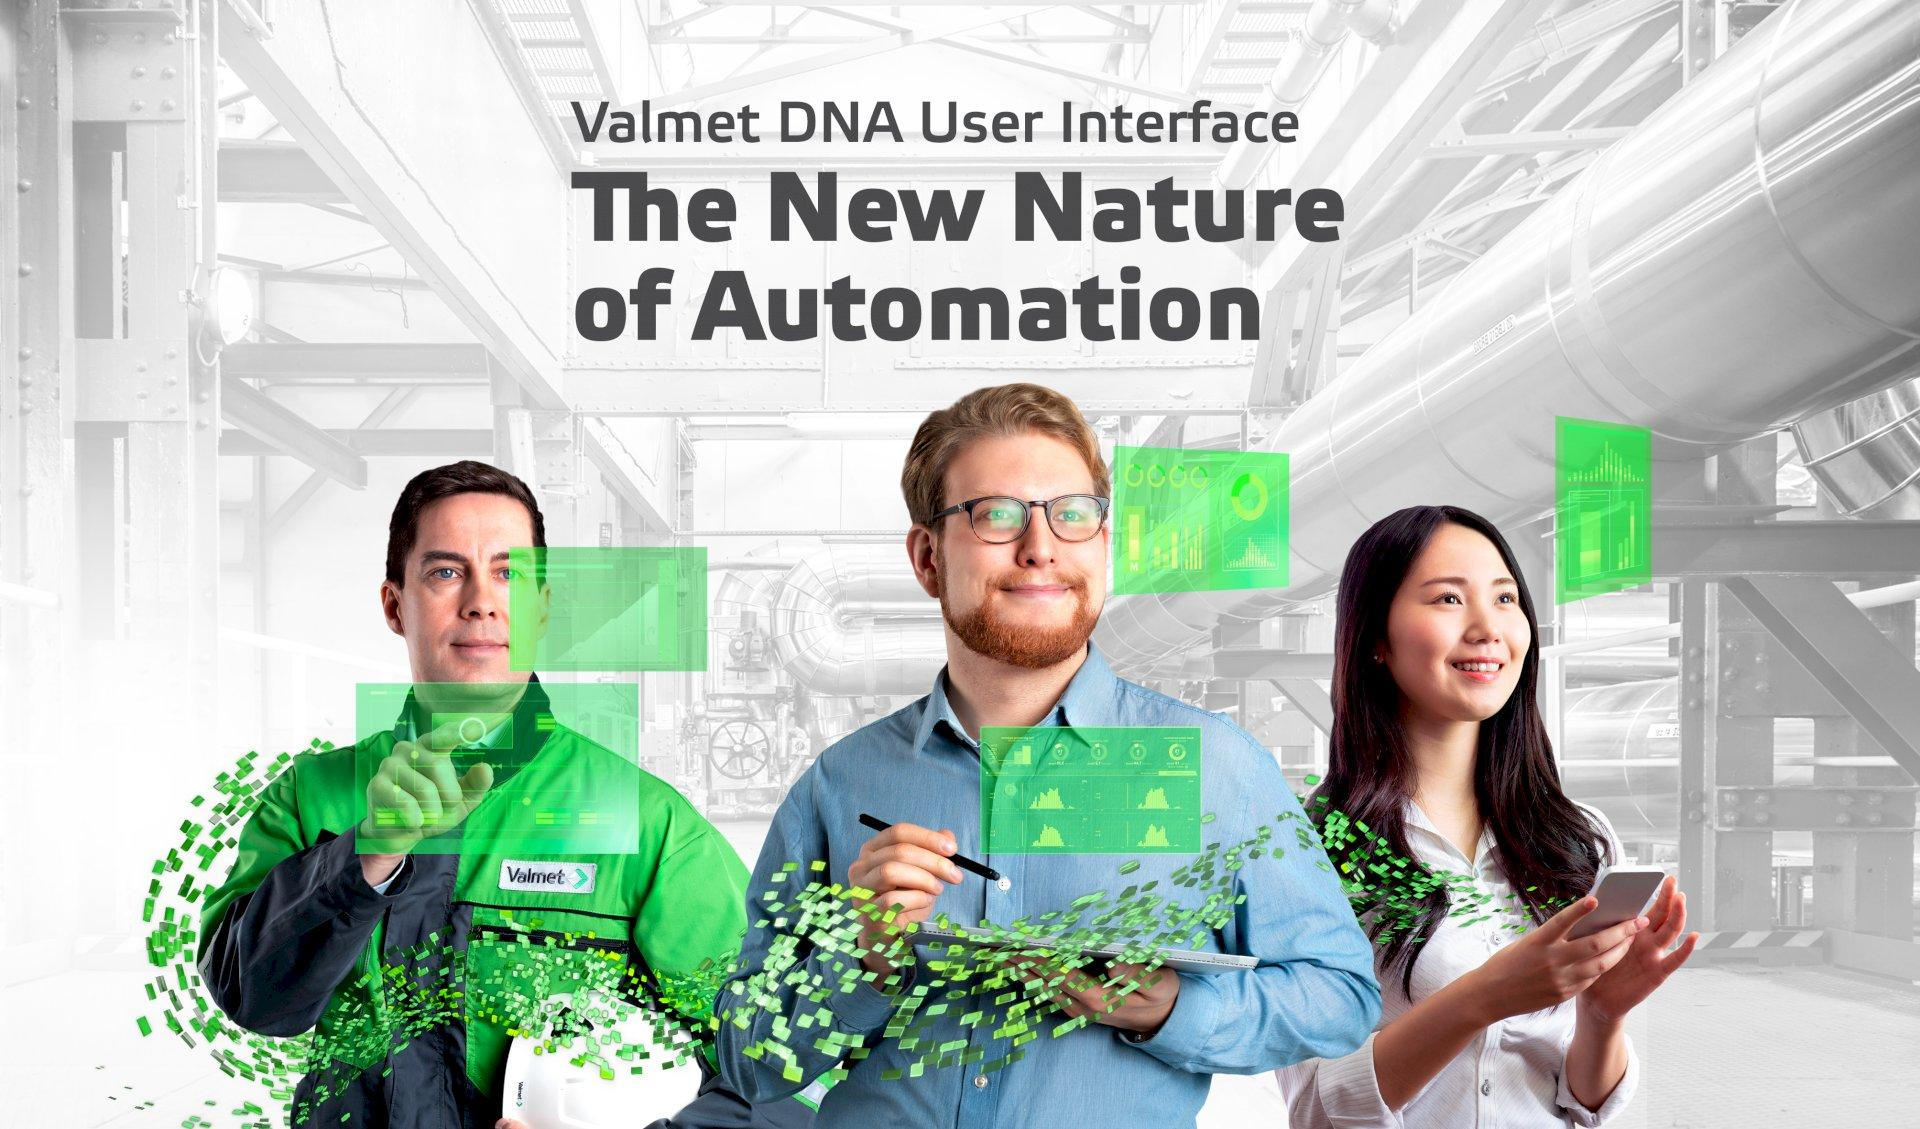 Valmet DNA User Interface - The New Nature of Automation